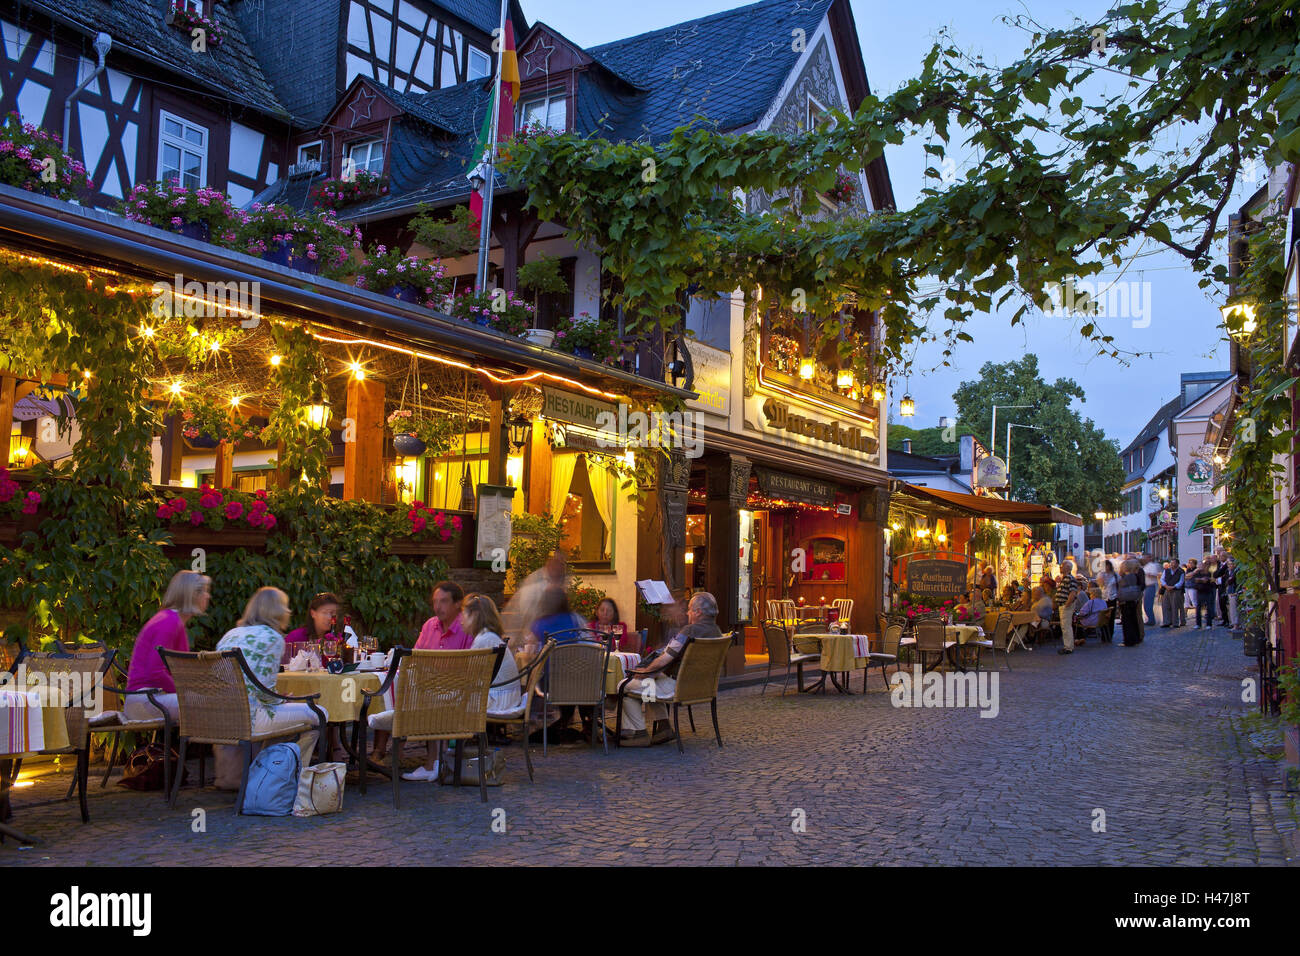 Old Town With Wine Bar Stock Photos & Old Town With Wine Bar Stock ...